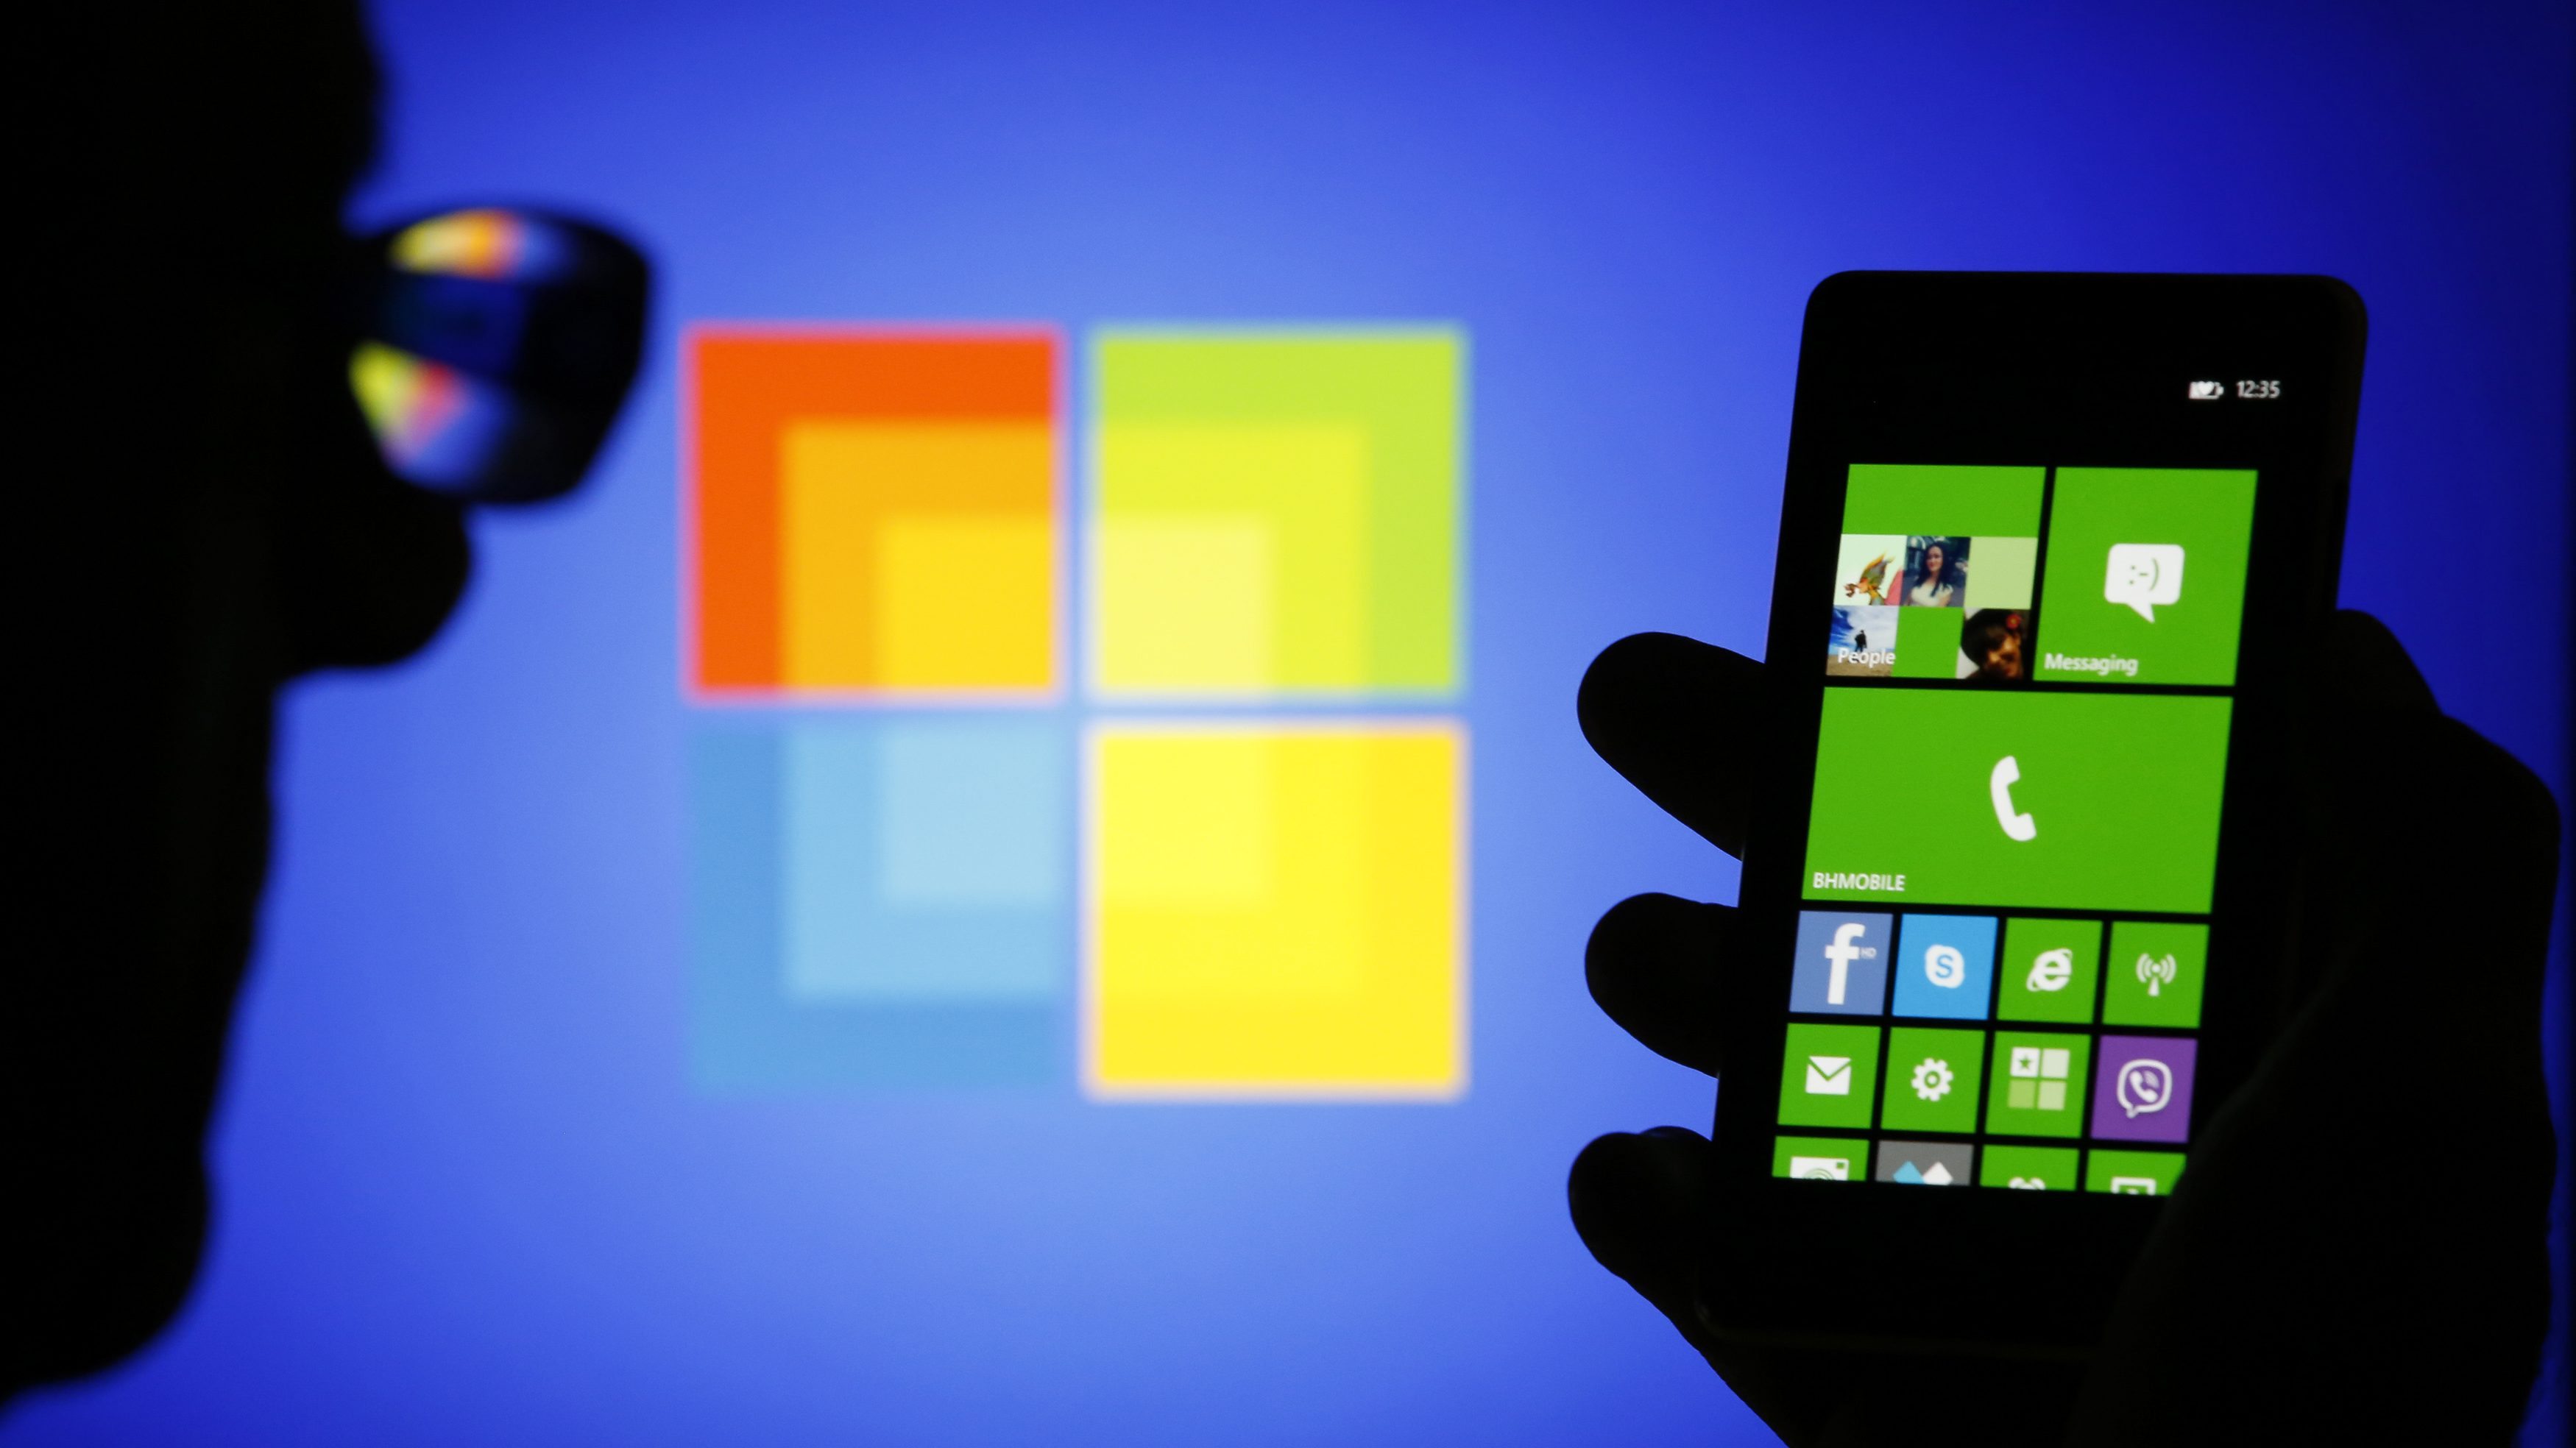 A man is silhouetted against a video screen with as he poses with a Nokia Lumia 820 smartphone in this photo illustration taken in the central Bosnian town of Zenica, September 3, 2013. Two years after hitching its fate to Microsoft's Windows Phone software, a withered Nokia collapsed into the arms of the U.S. software giant, agreeing to sell its main handset business for 5.44 billion euros ($7.2 billion). Nokia, which will continue as a maker of networking equipment and holder of patents, was once the world's dominant handset manufacturer but was long since overtaken by Apple and Samsung in the highly competitive market for more powerful smartphones.